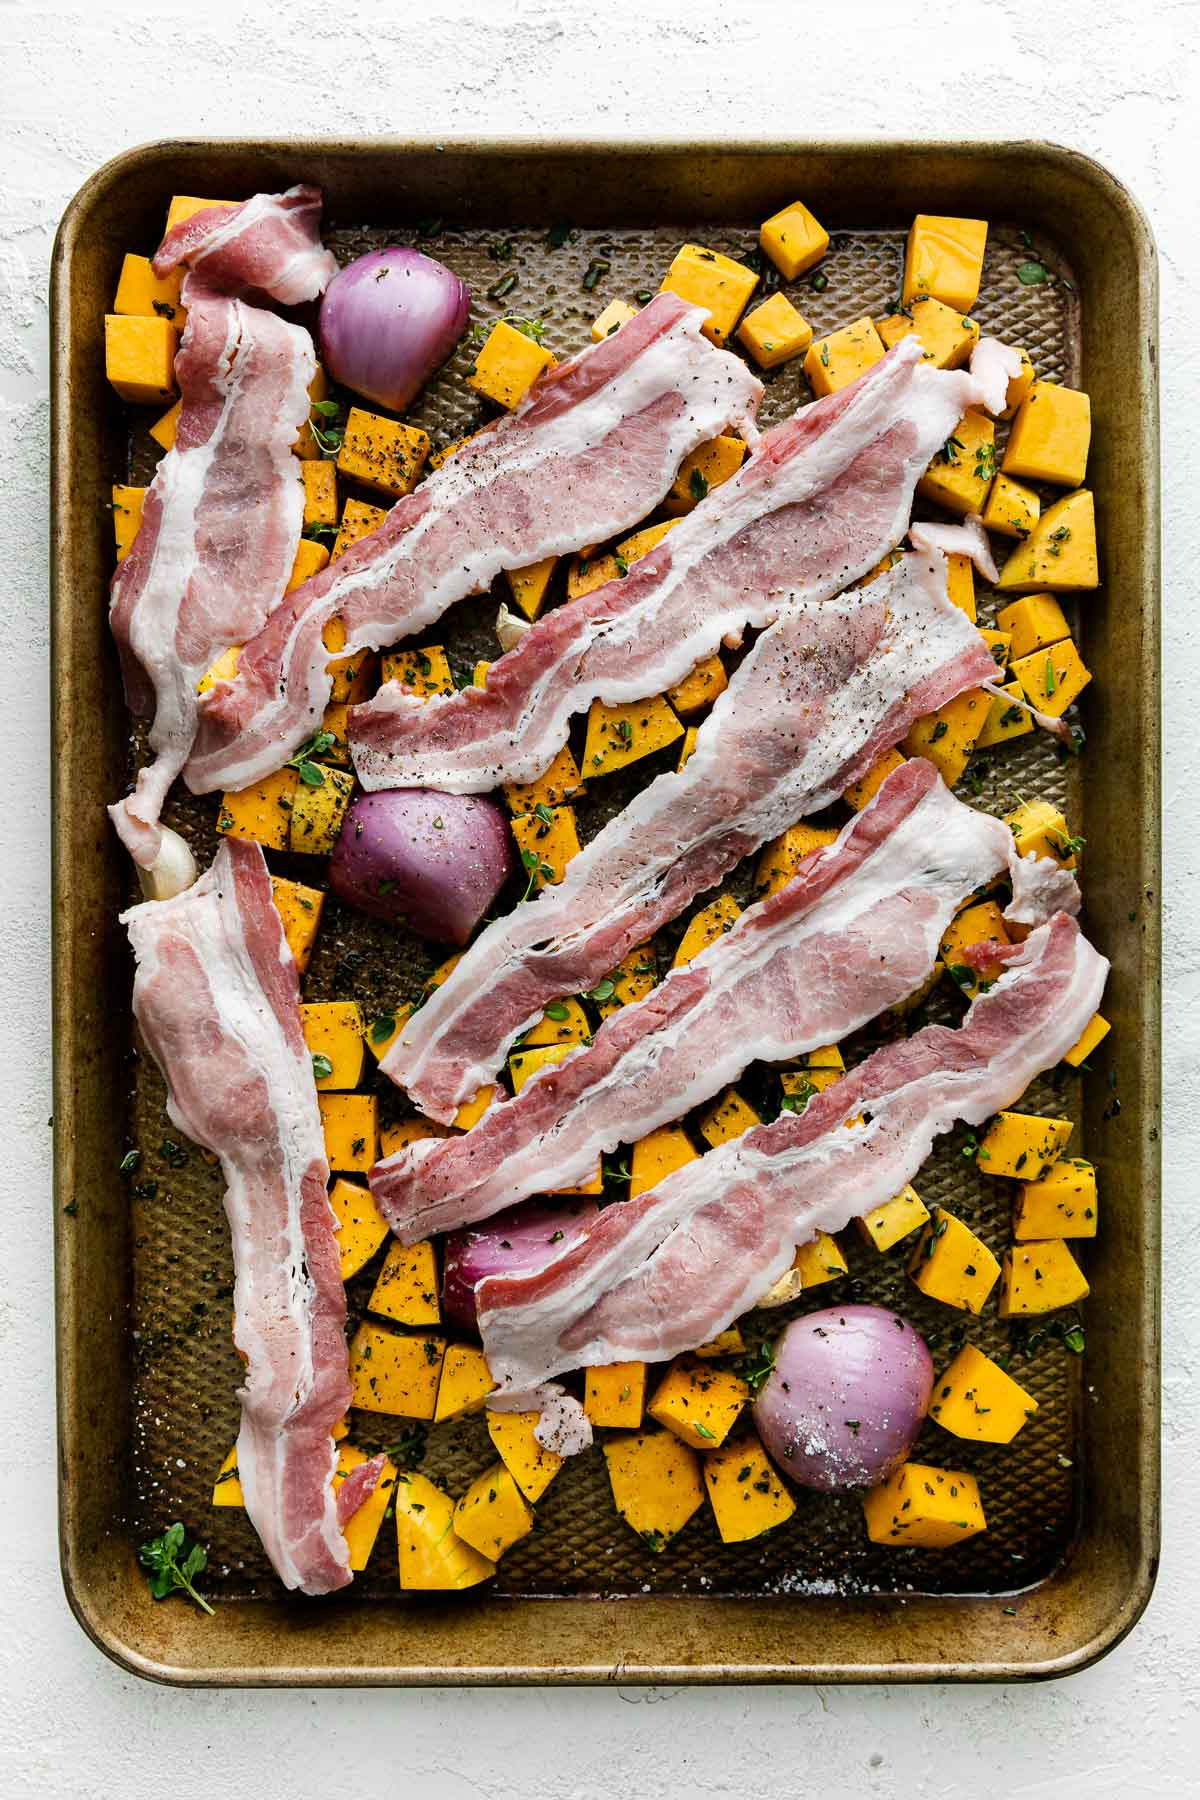 Cubed butternut squash, shallots, & garlic seasoned with olive oil & fresh herbs with bacon draped over top on a baking sheet before roasting. The baking sheet sits atop a white textured surface.